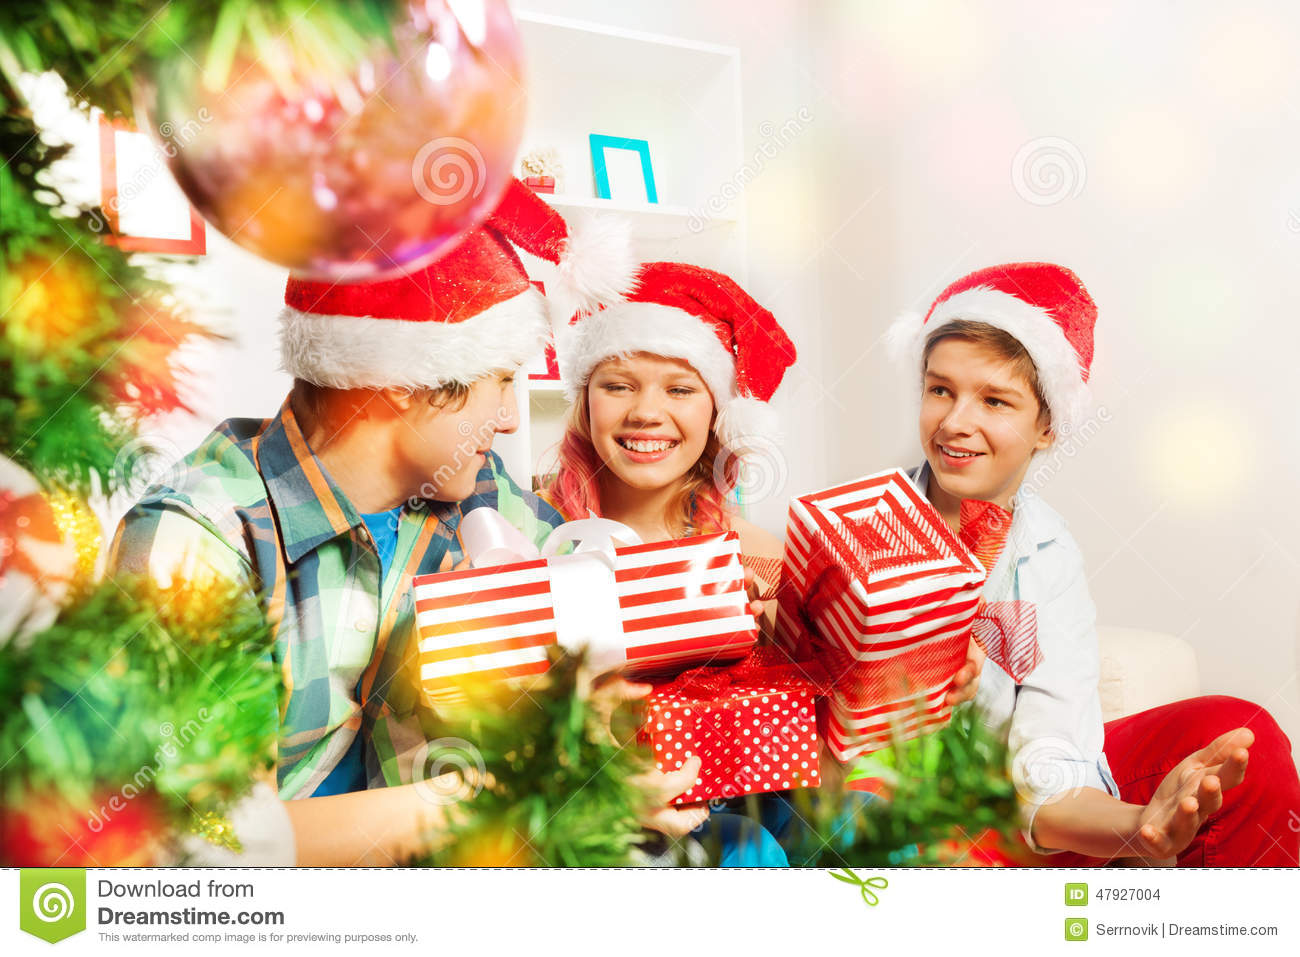 Cute Teen Kids Holding Christmas Presents Stock Photo - Image of ...